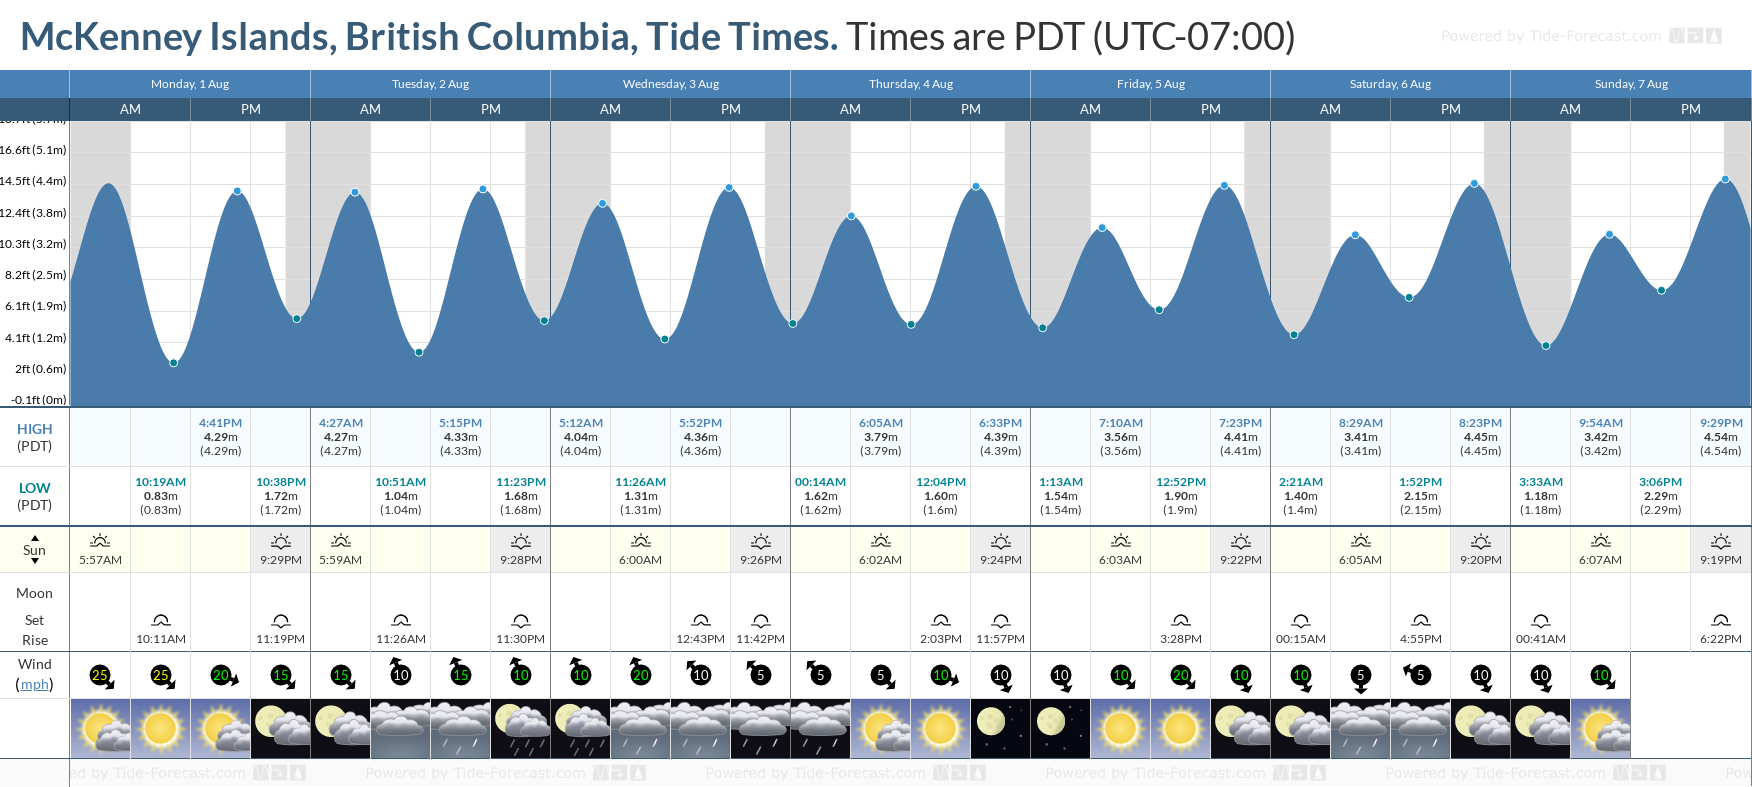 McKenney Islands, British Columbia Tide Chart including high and low tide tide times for the next 7 days